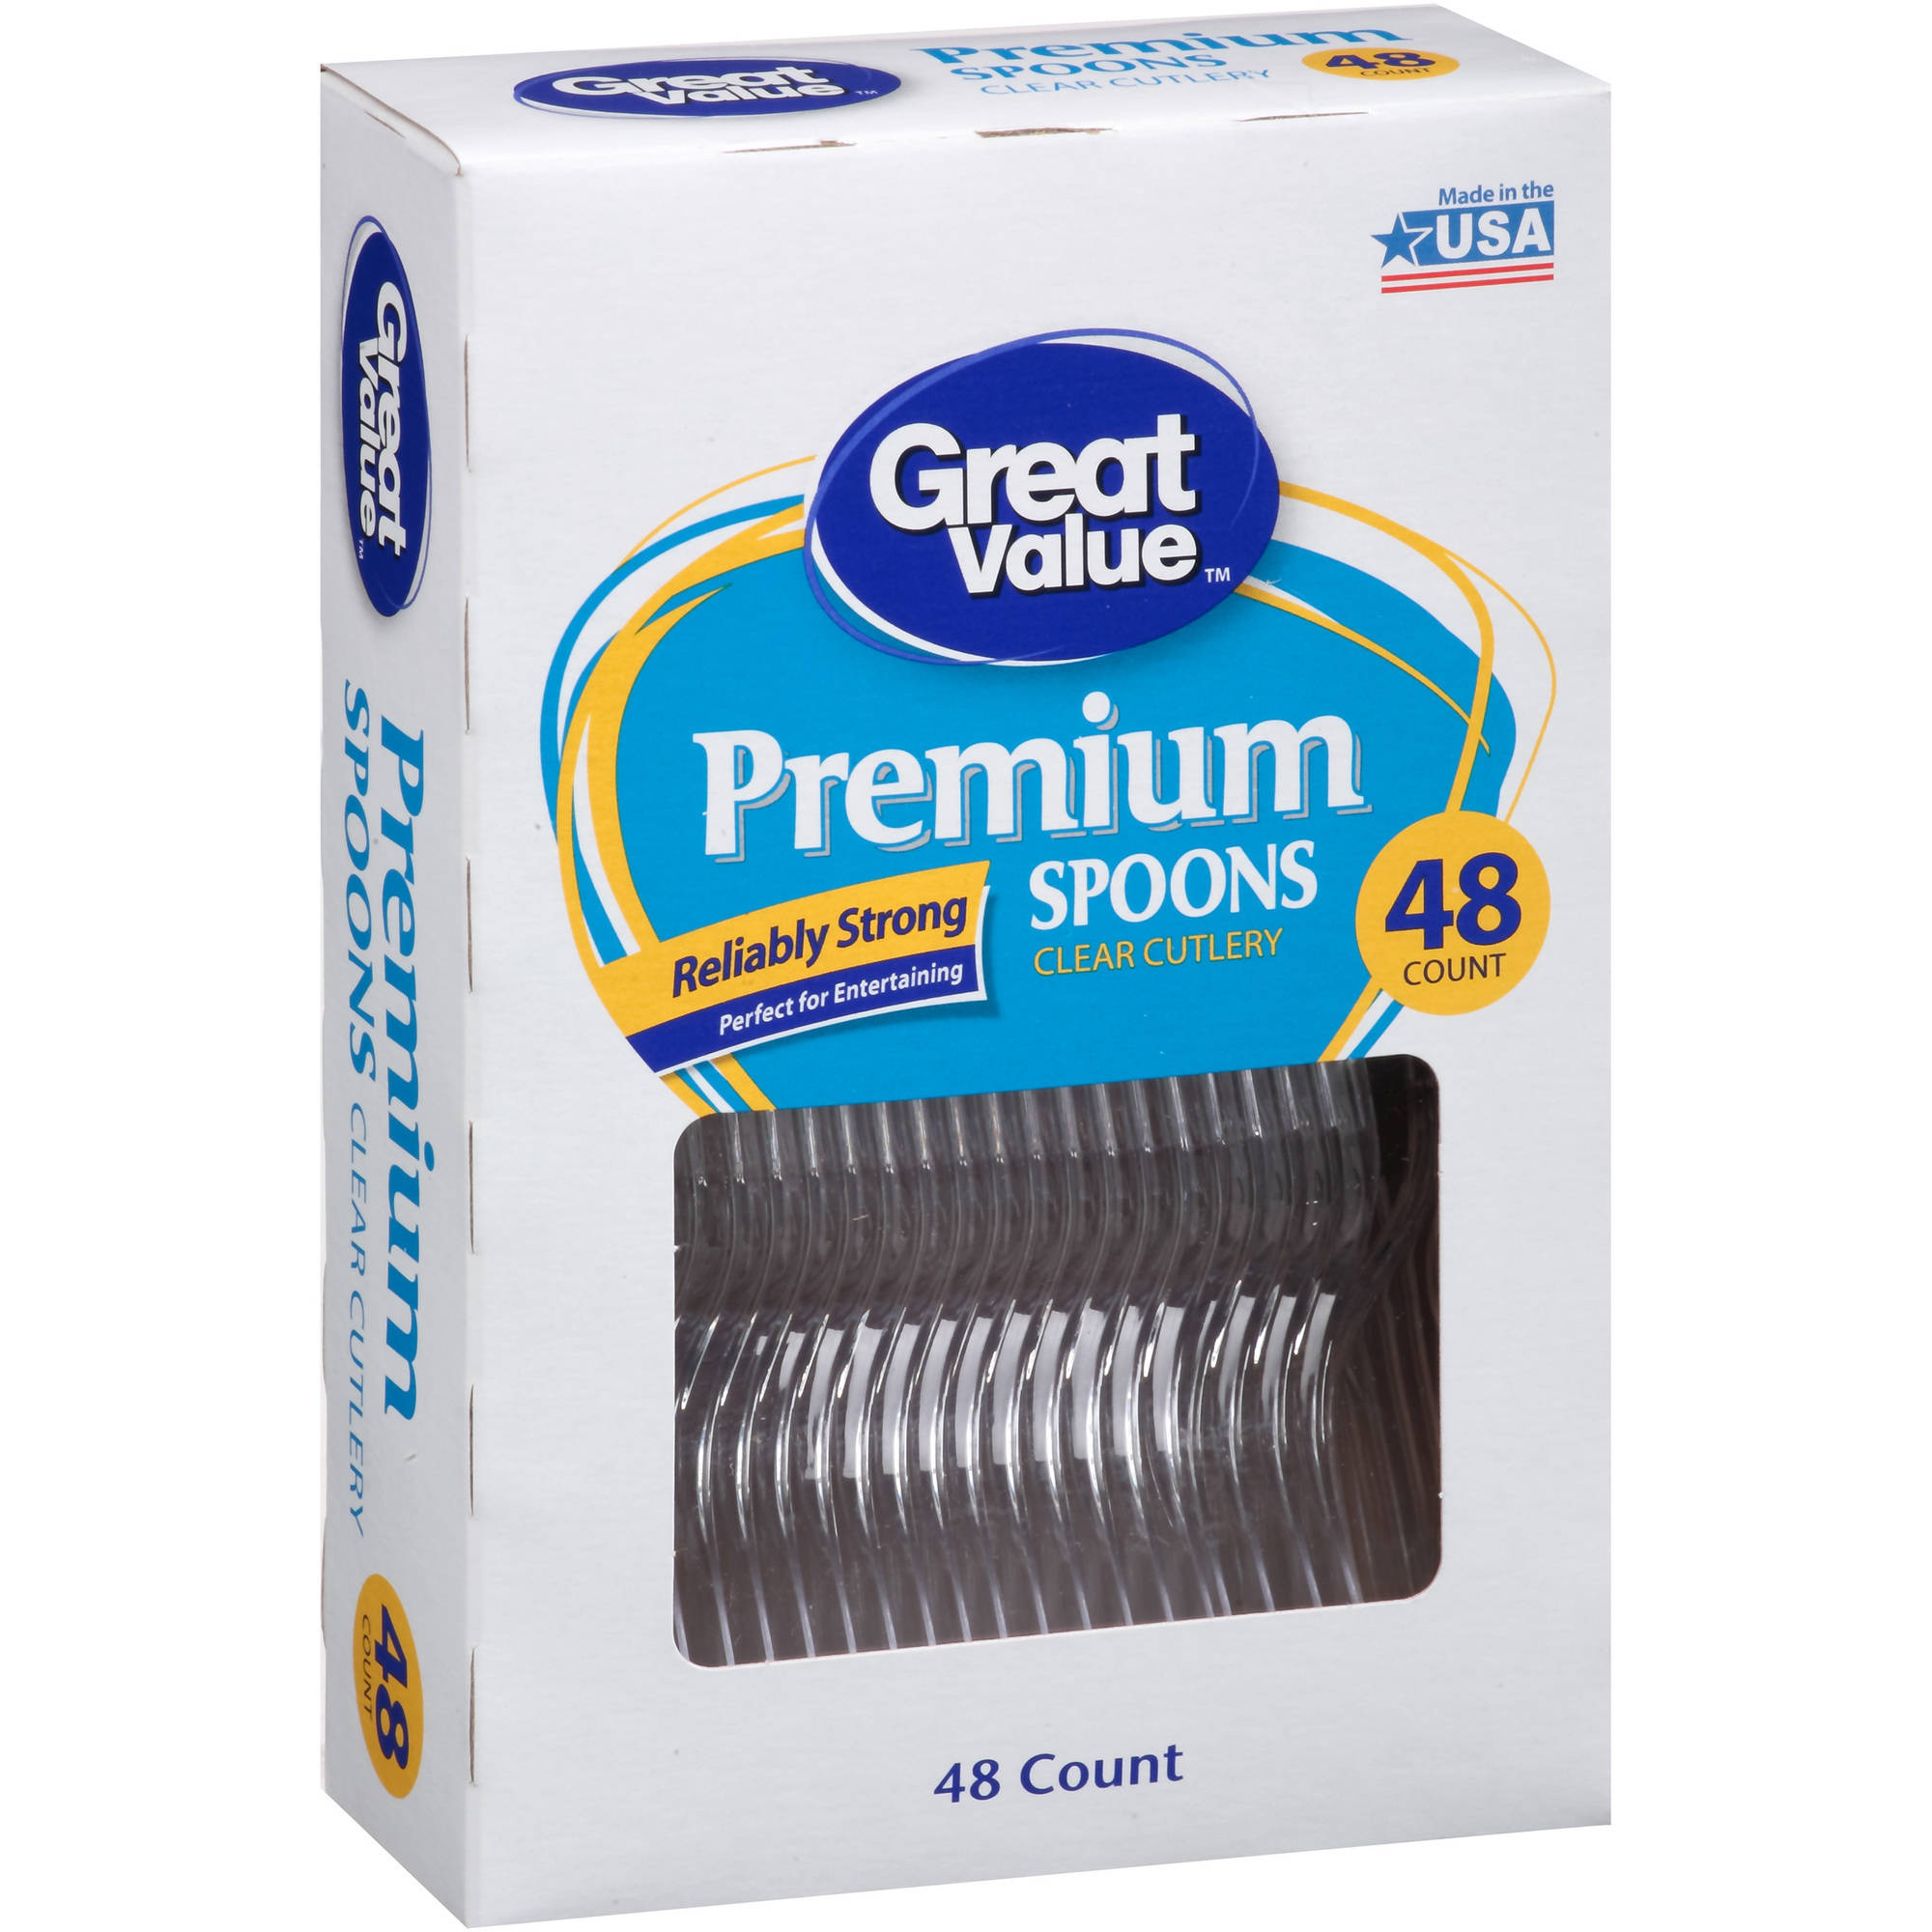 Great Value Premium Spoons, 48 ct